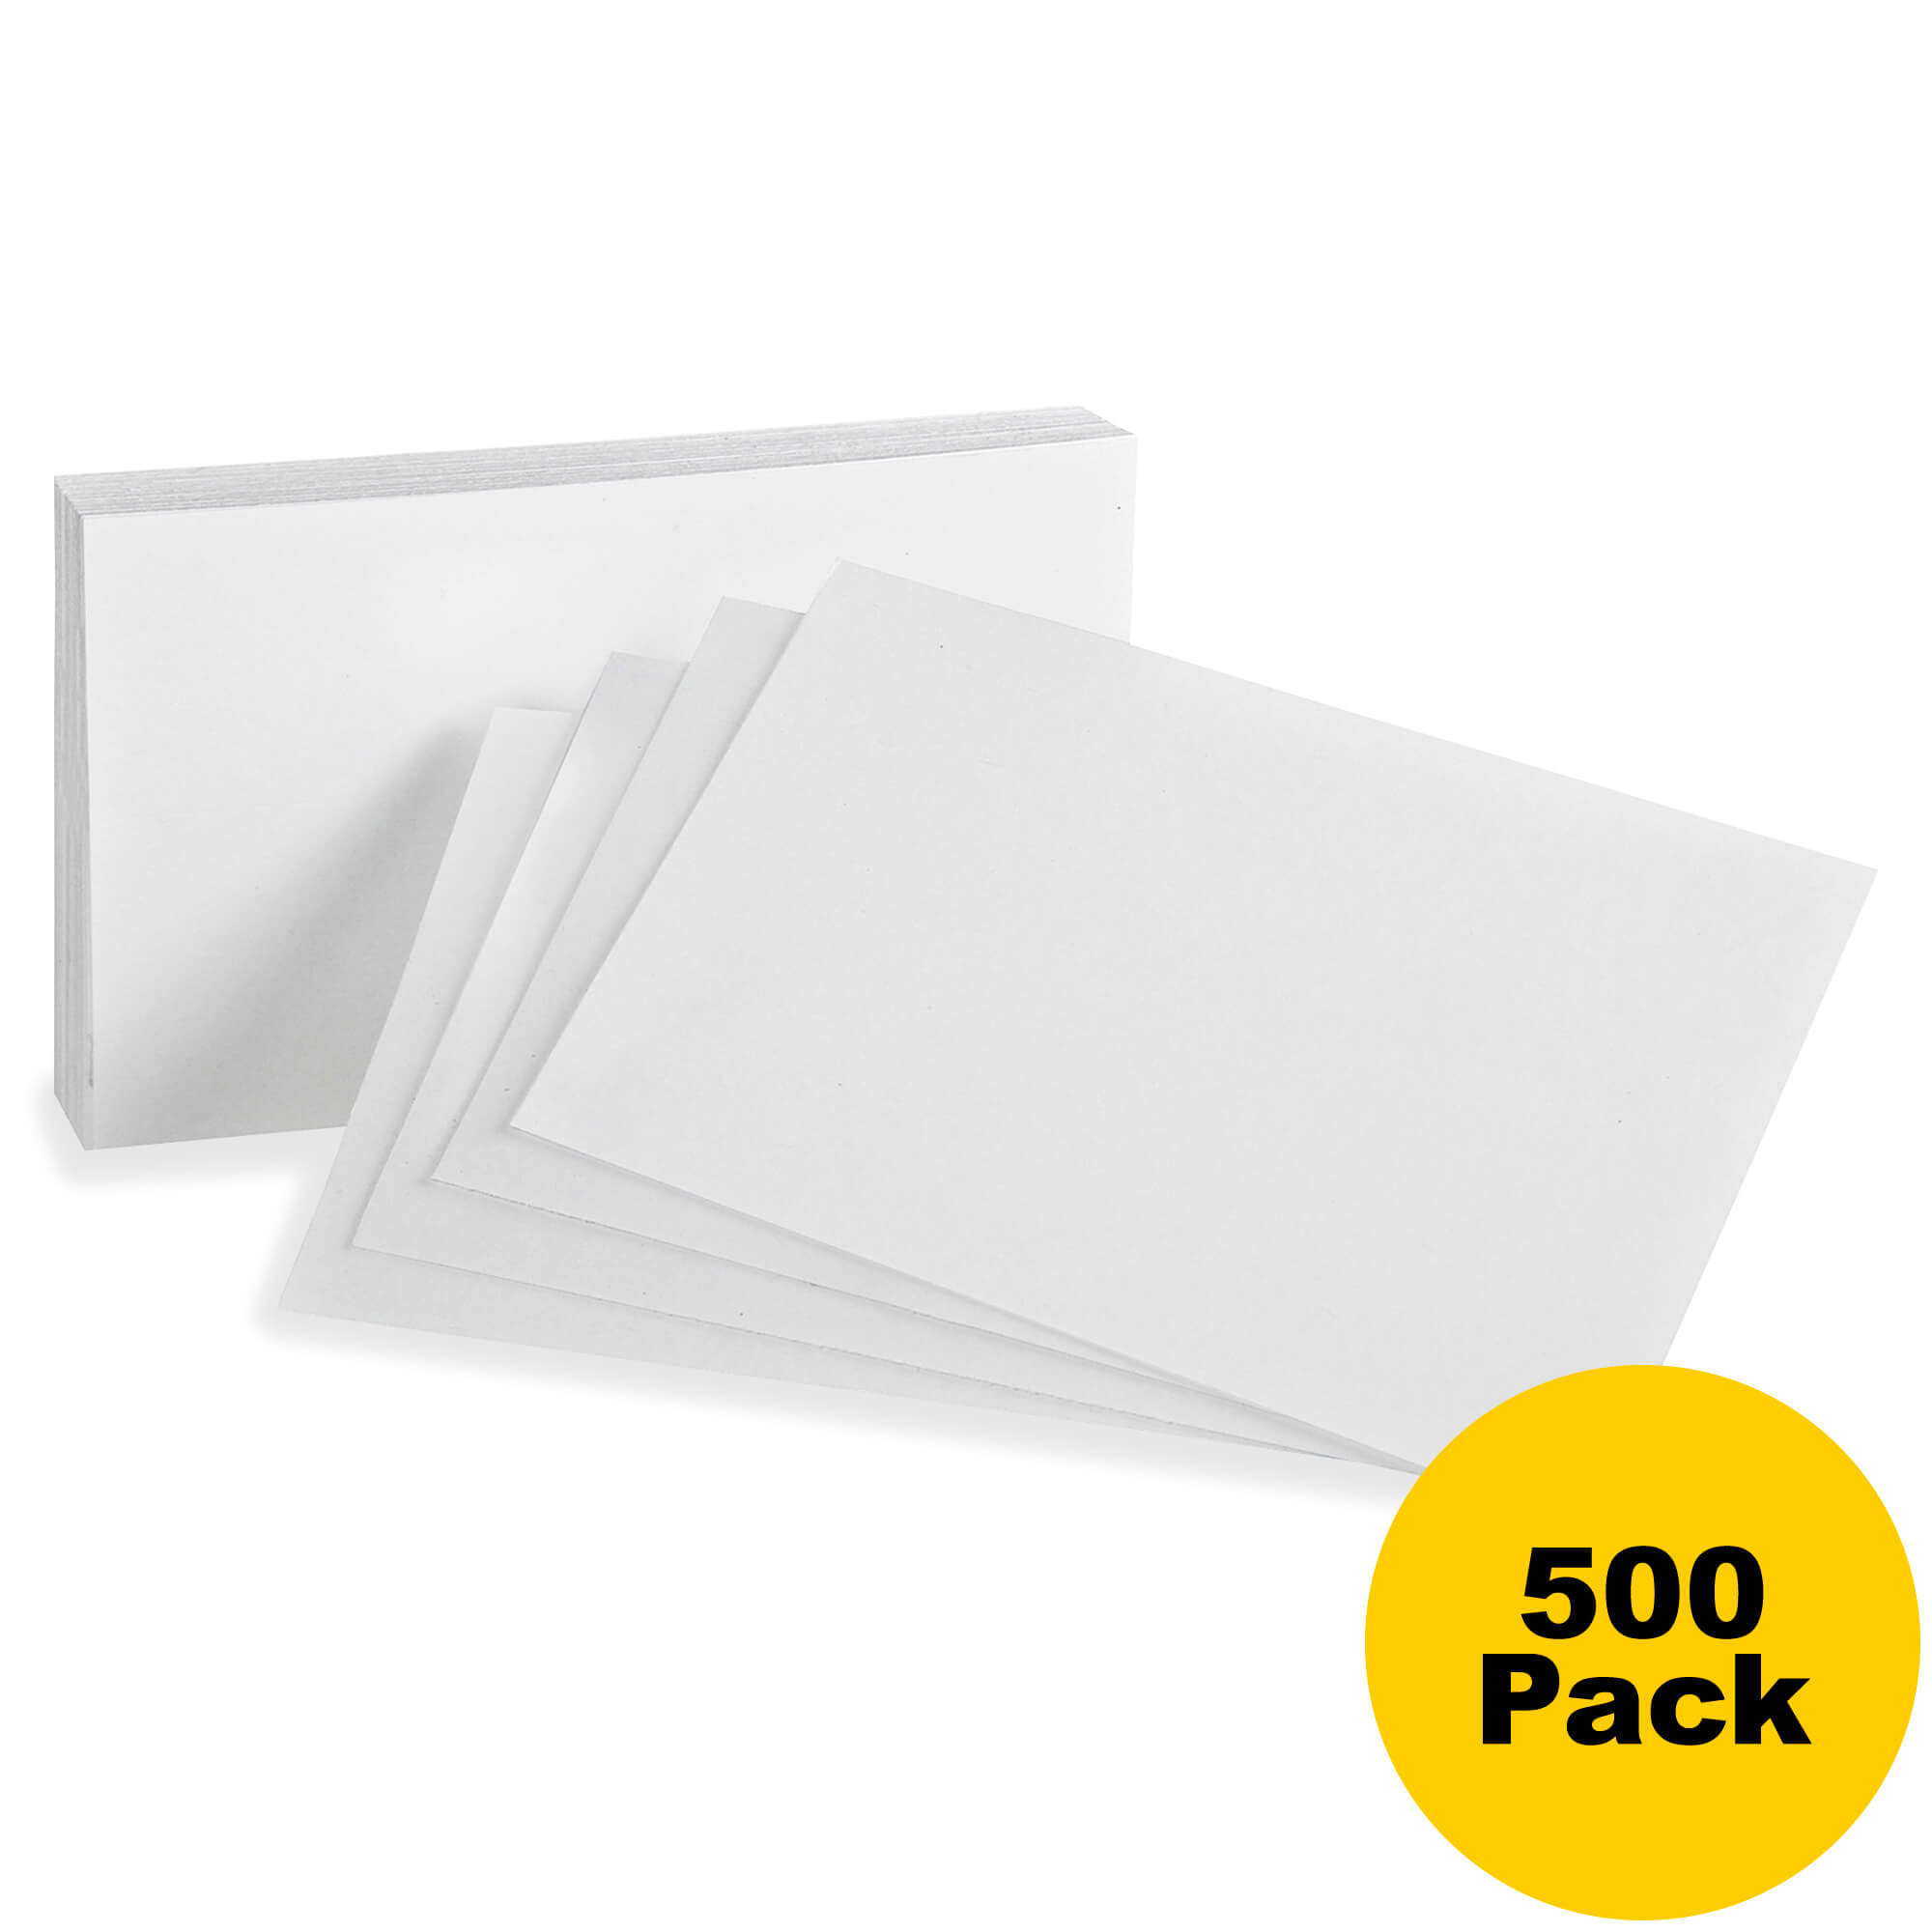 Hamelin Oxford Printable Index Card - 3 X 5 - 85 Lb Basis Weight - Recycled  - 10% Recycled Content - 500 / Bundle - White within 3 By 5 Index Card Template